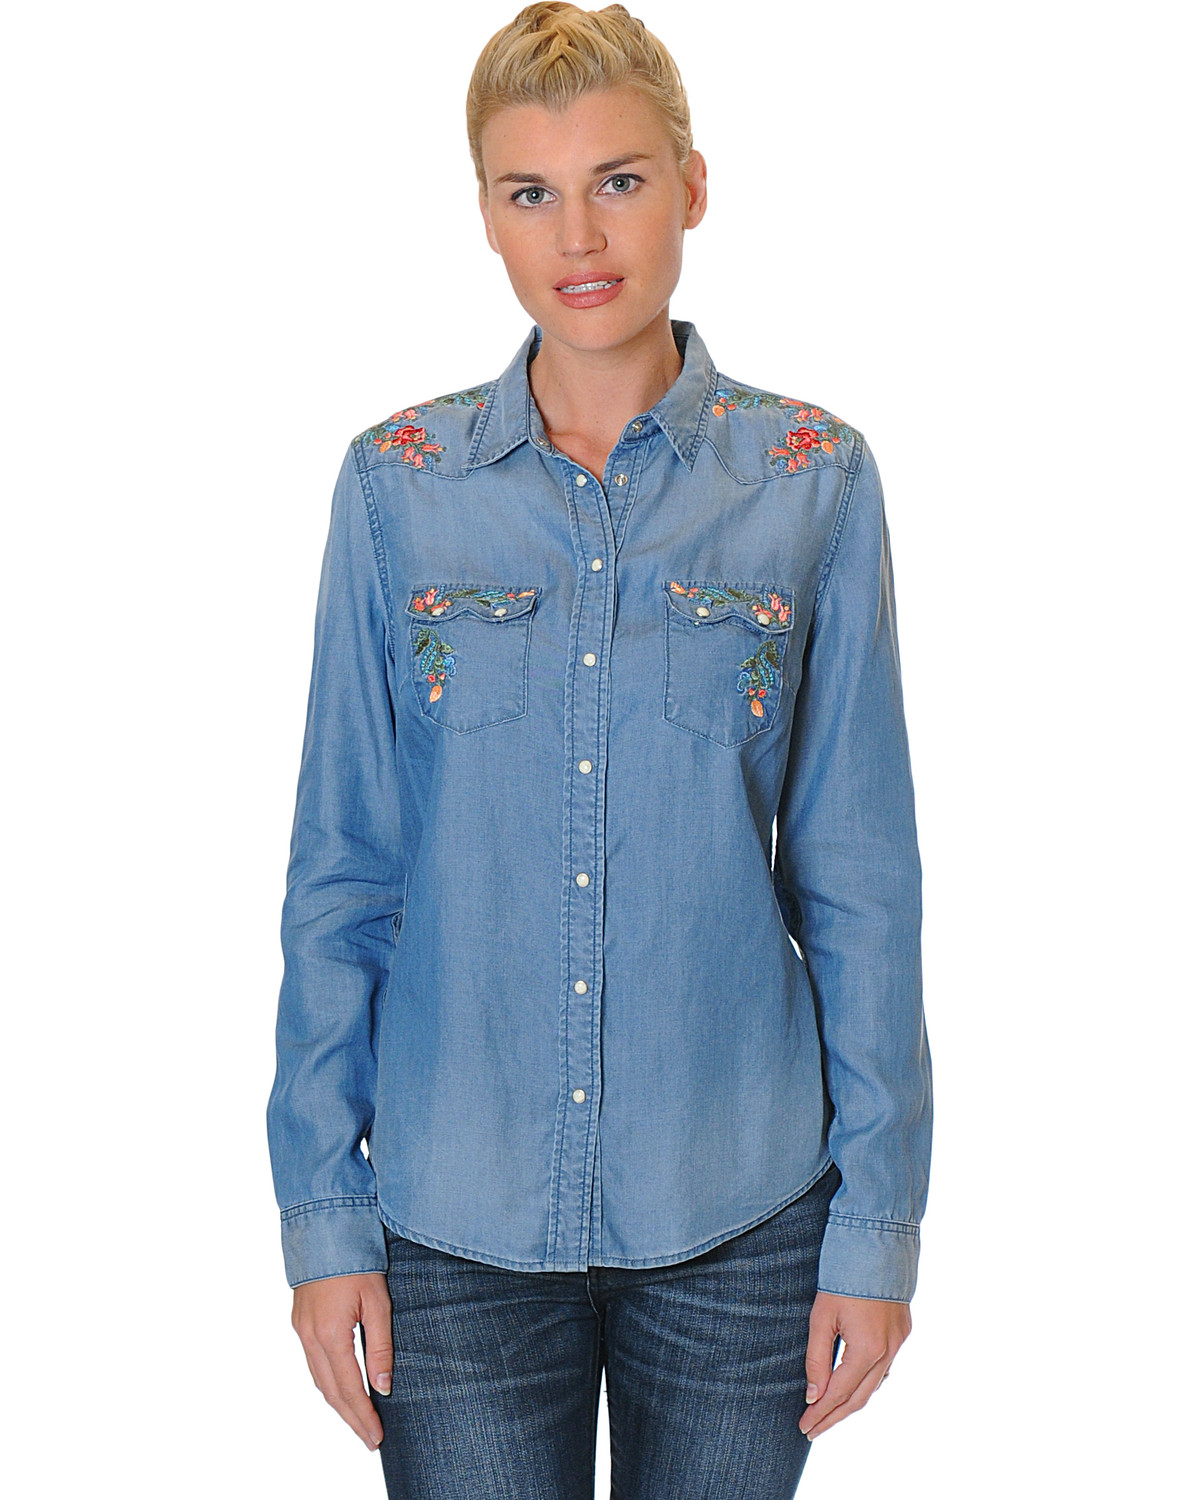 512dbbf3 Zoomed Image Grace in LA Women's Long Sleeve Denim Shirt with Floral  Embroidery, Medium Blue, hi